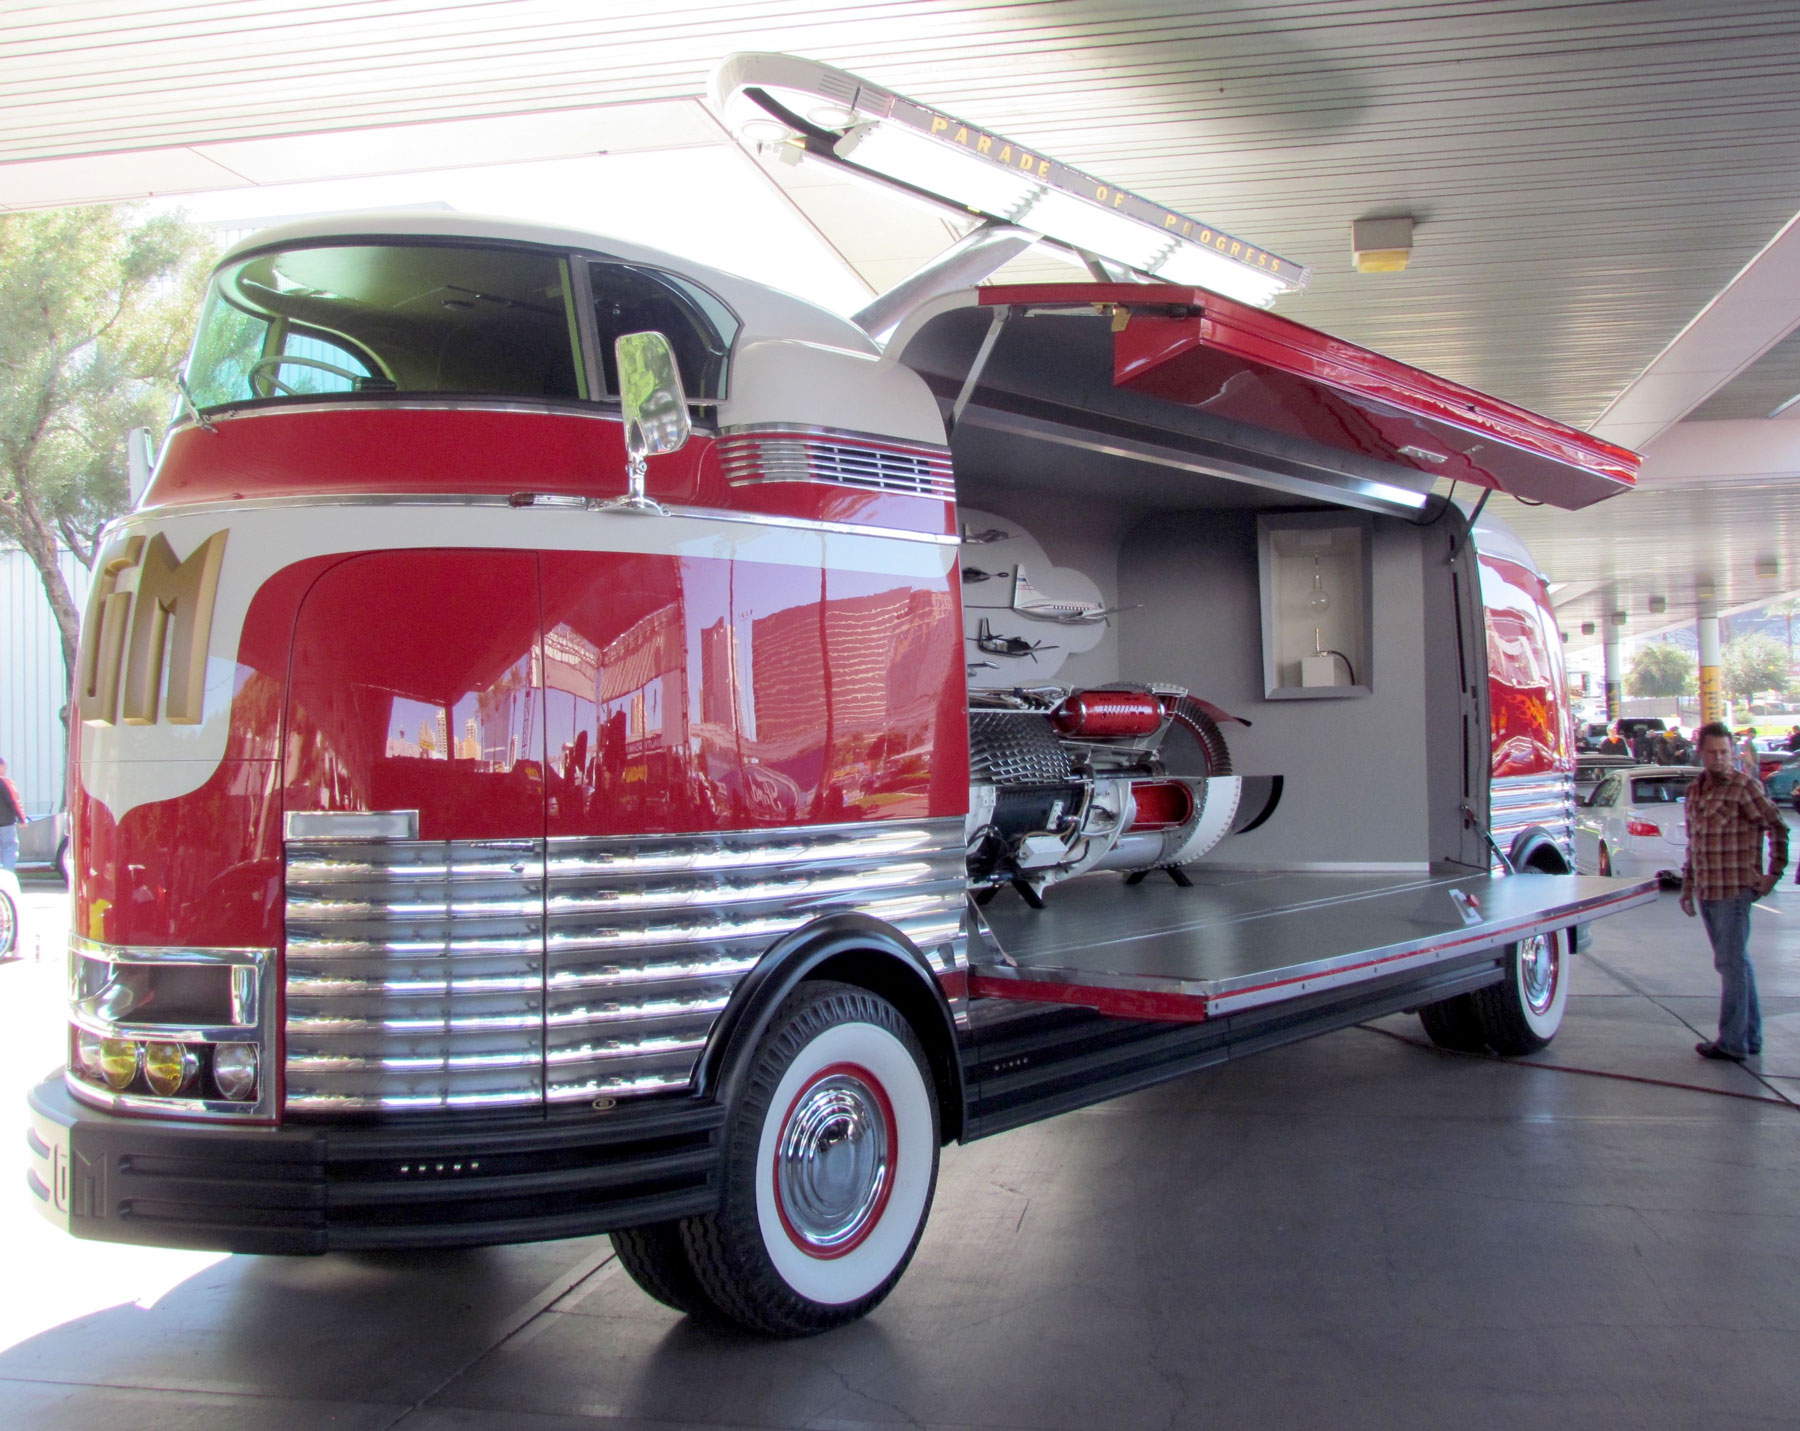 The massive doors on the Futurliner open to display a cutaway Allison jet engine.